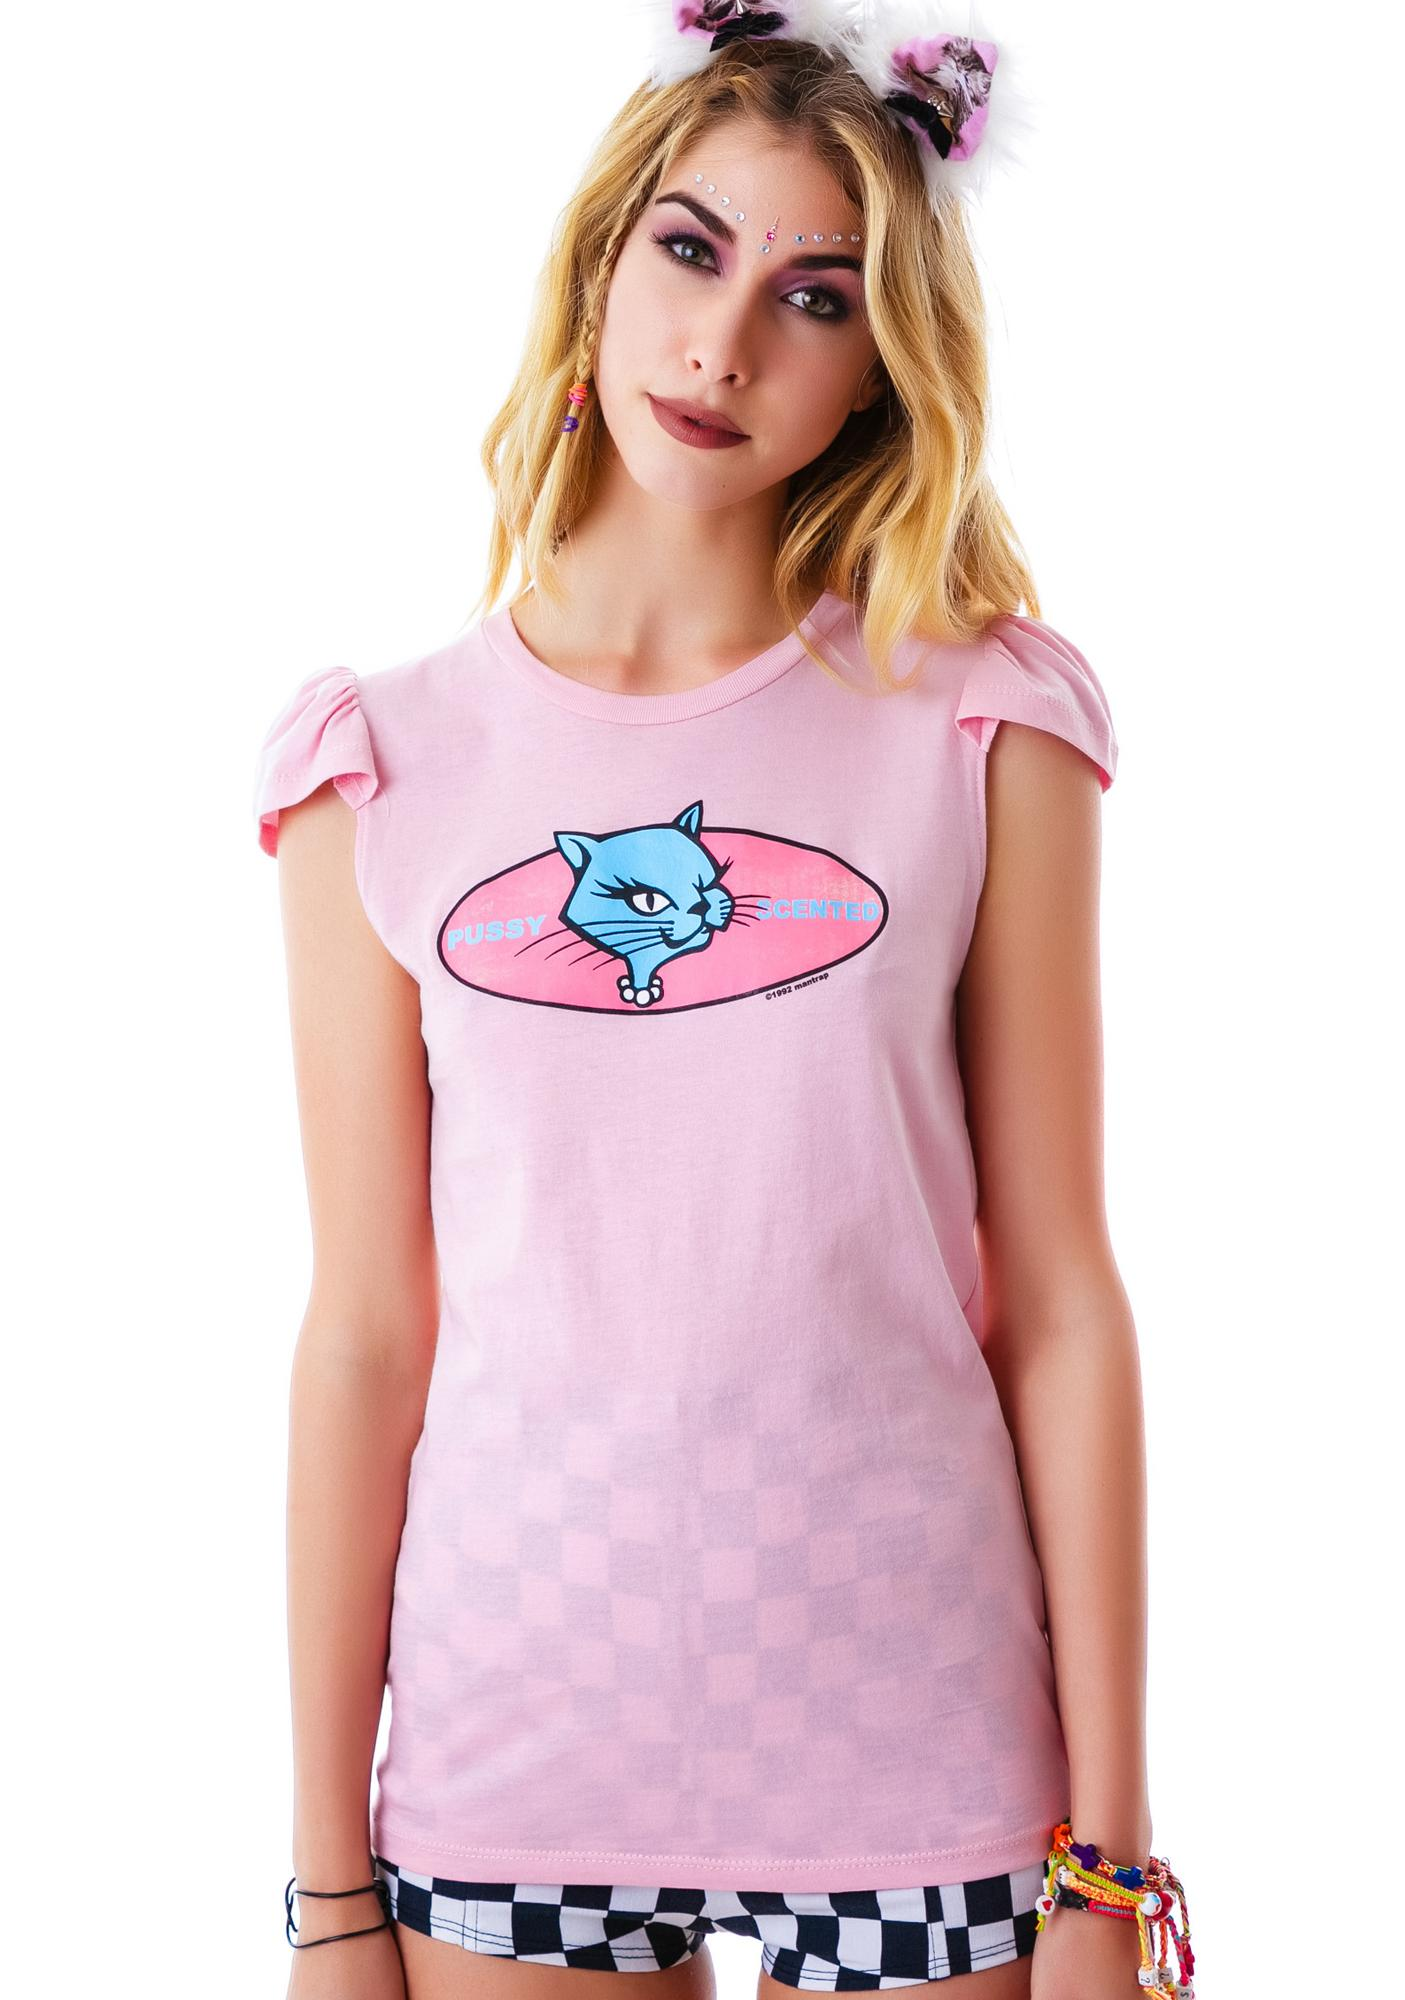 Pussy Scented Tee